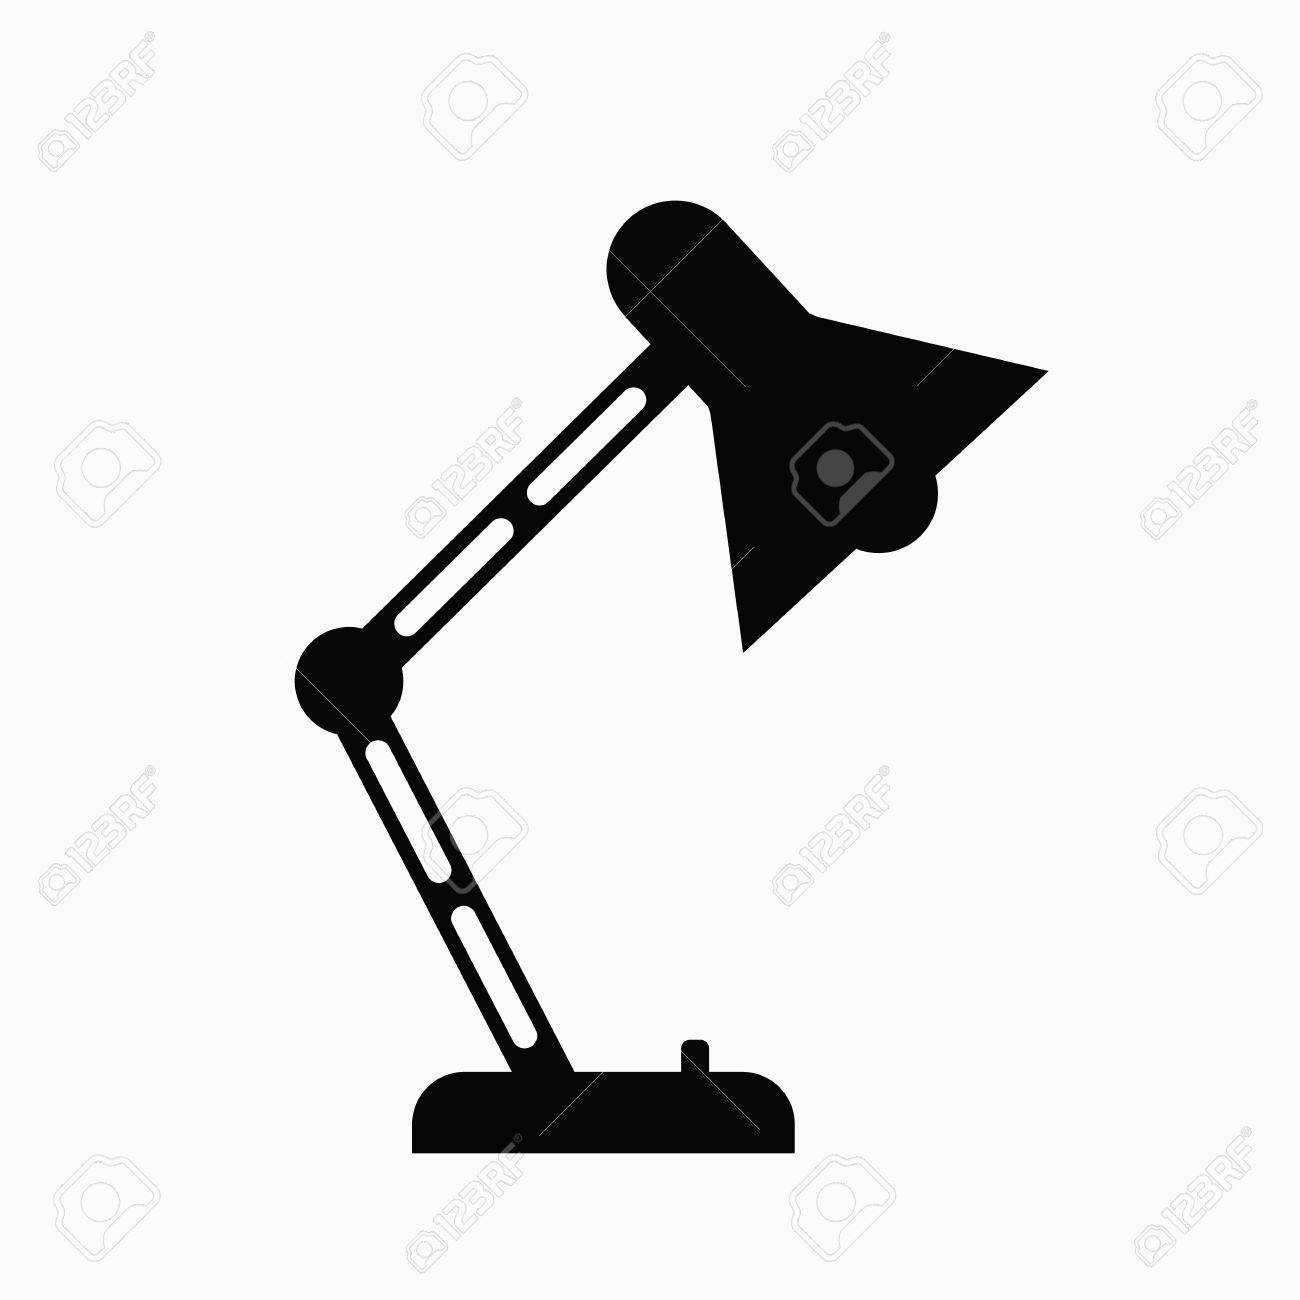 office table lamp. Office Lamp Flat Icon. Vector Table Illustration. Concept Of Desk